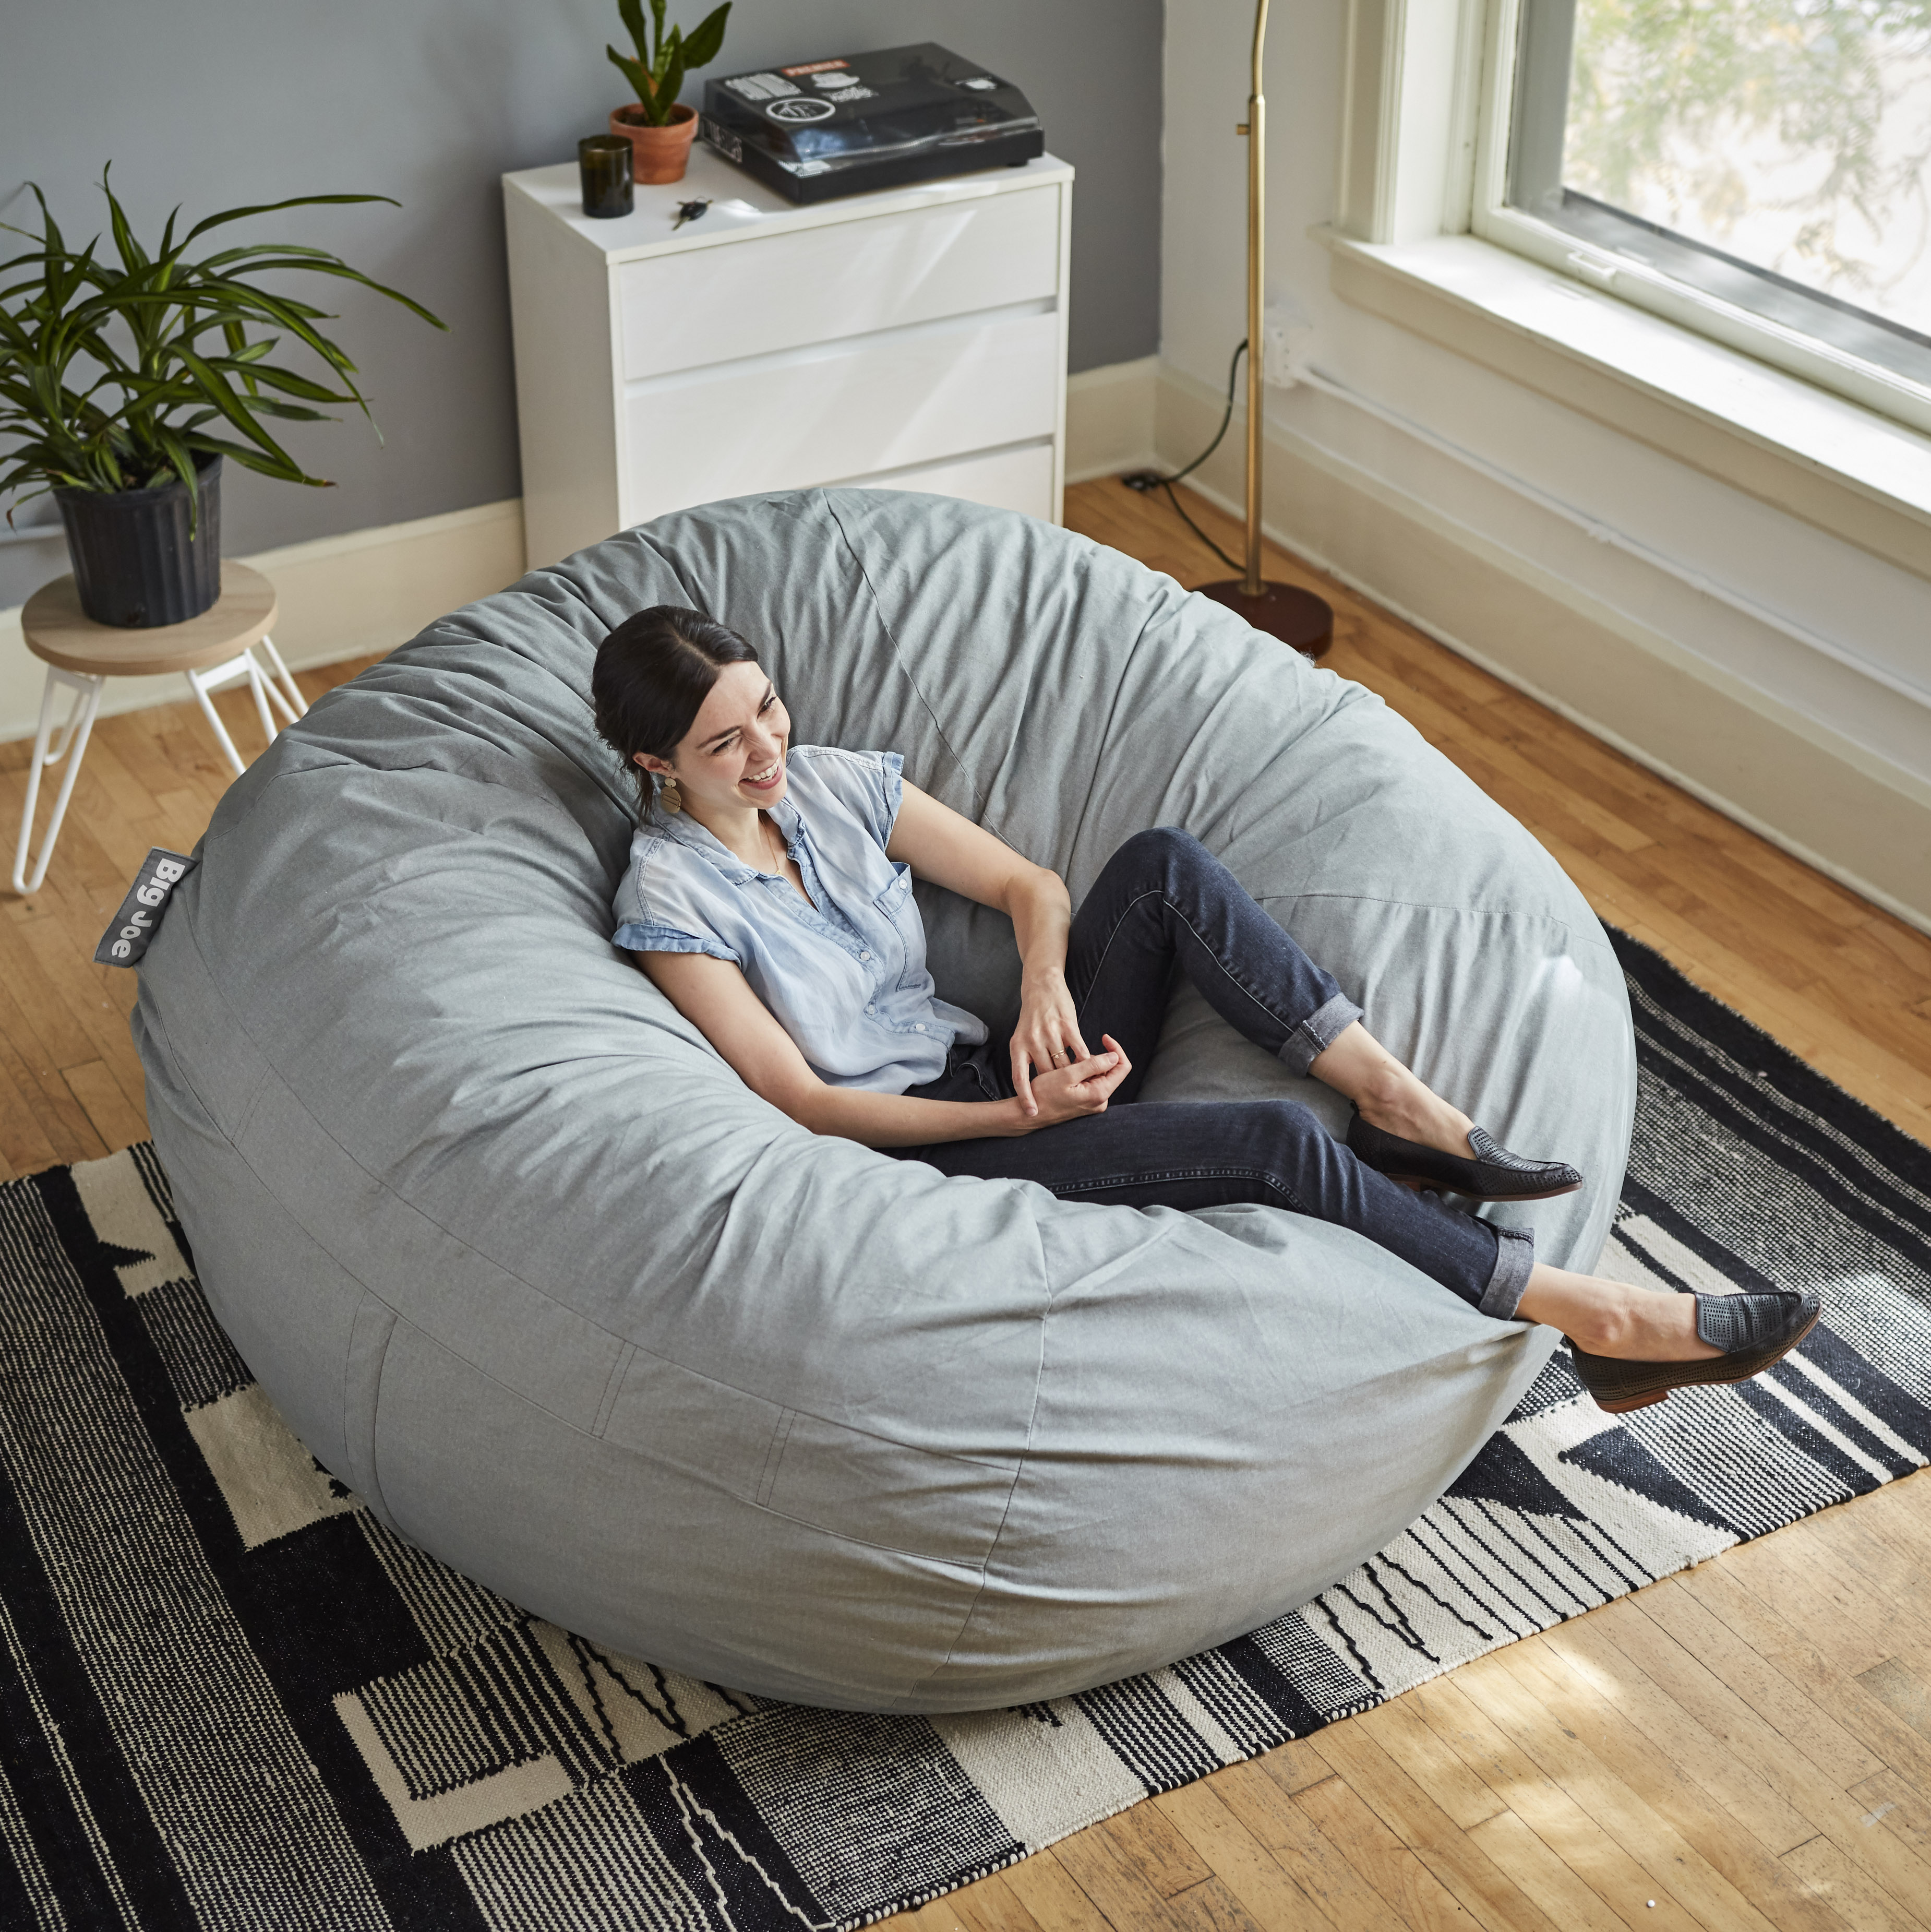 Amazing Big Joe Fuf 6 Round Bean Bag Chair Multiple Colors Dailytribune Chair Design For Home Dailytribuneorg